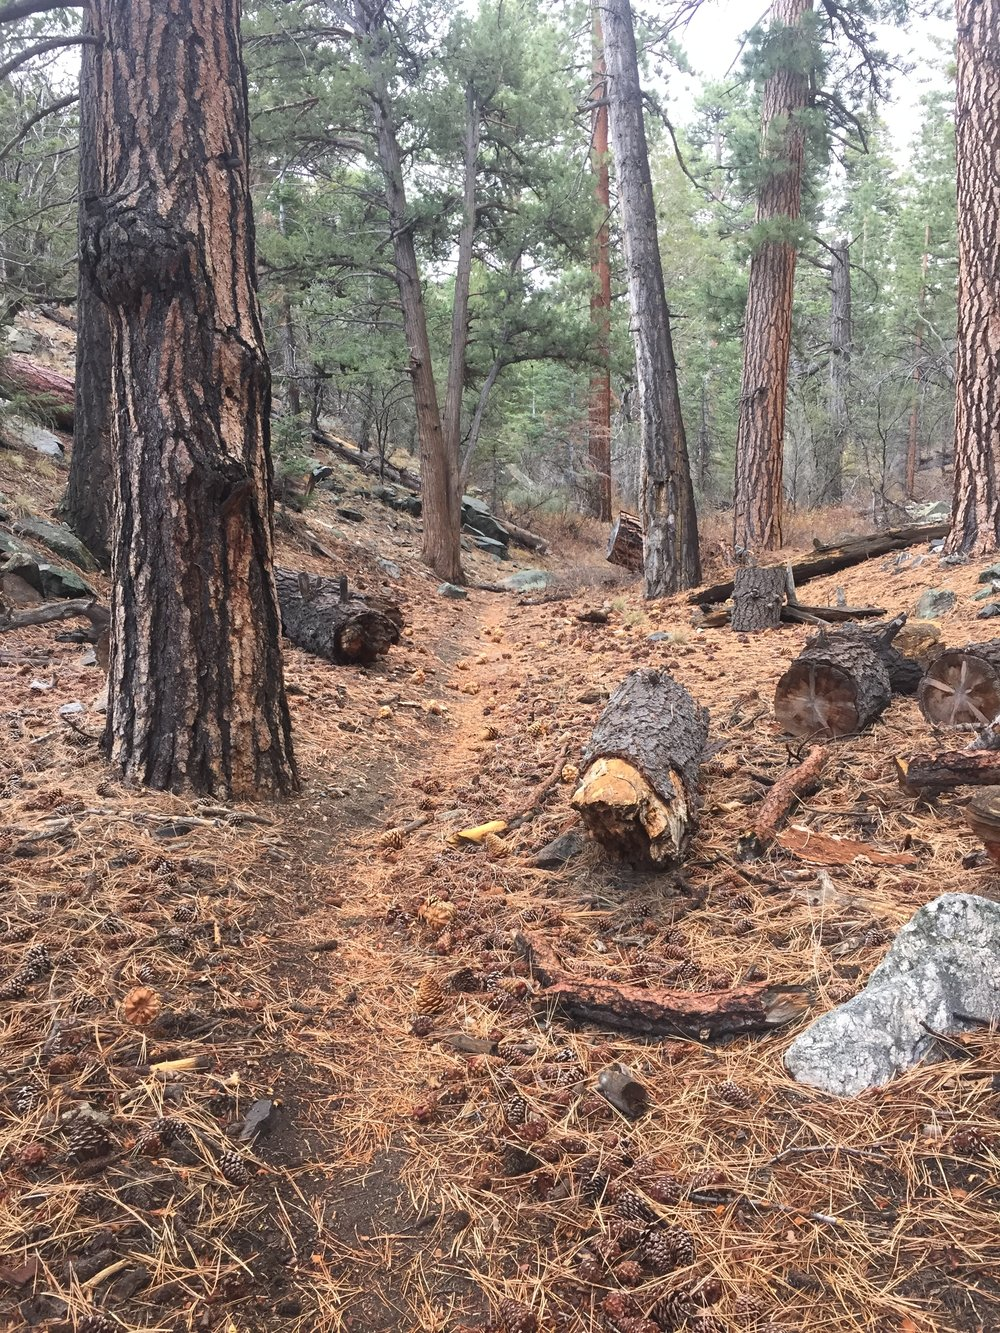 A Jeffrey pine forest along Arrastre Creek